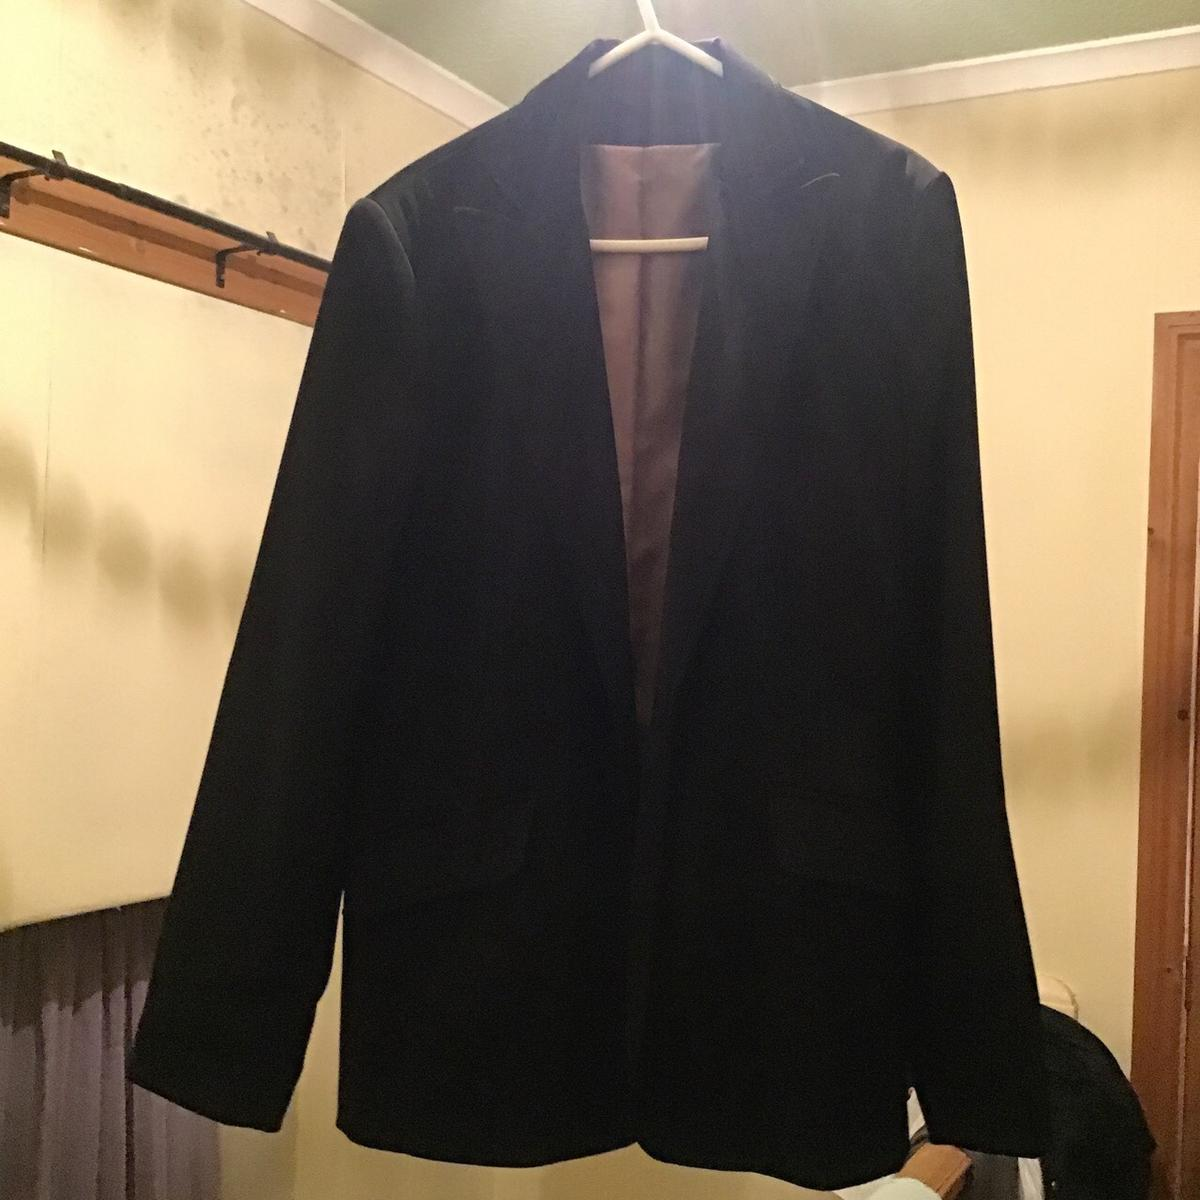 Little black jacket size 14 Really nice item hardly worn Has pockets either side and one button to choose either to fasten or wear loose. Fold sleeves to wear stylishly with a dress or some jeans or wear for a more formal wear.